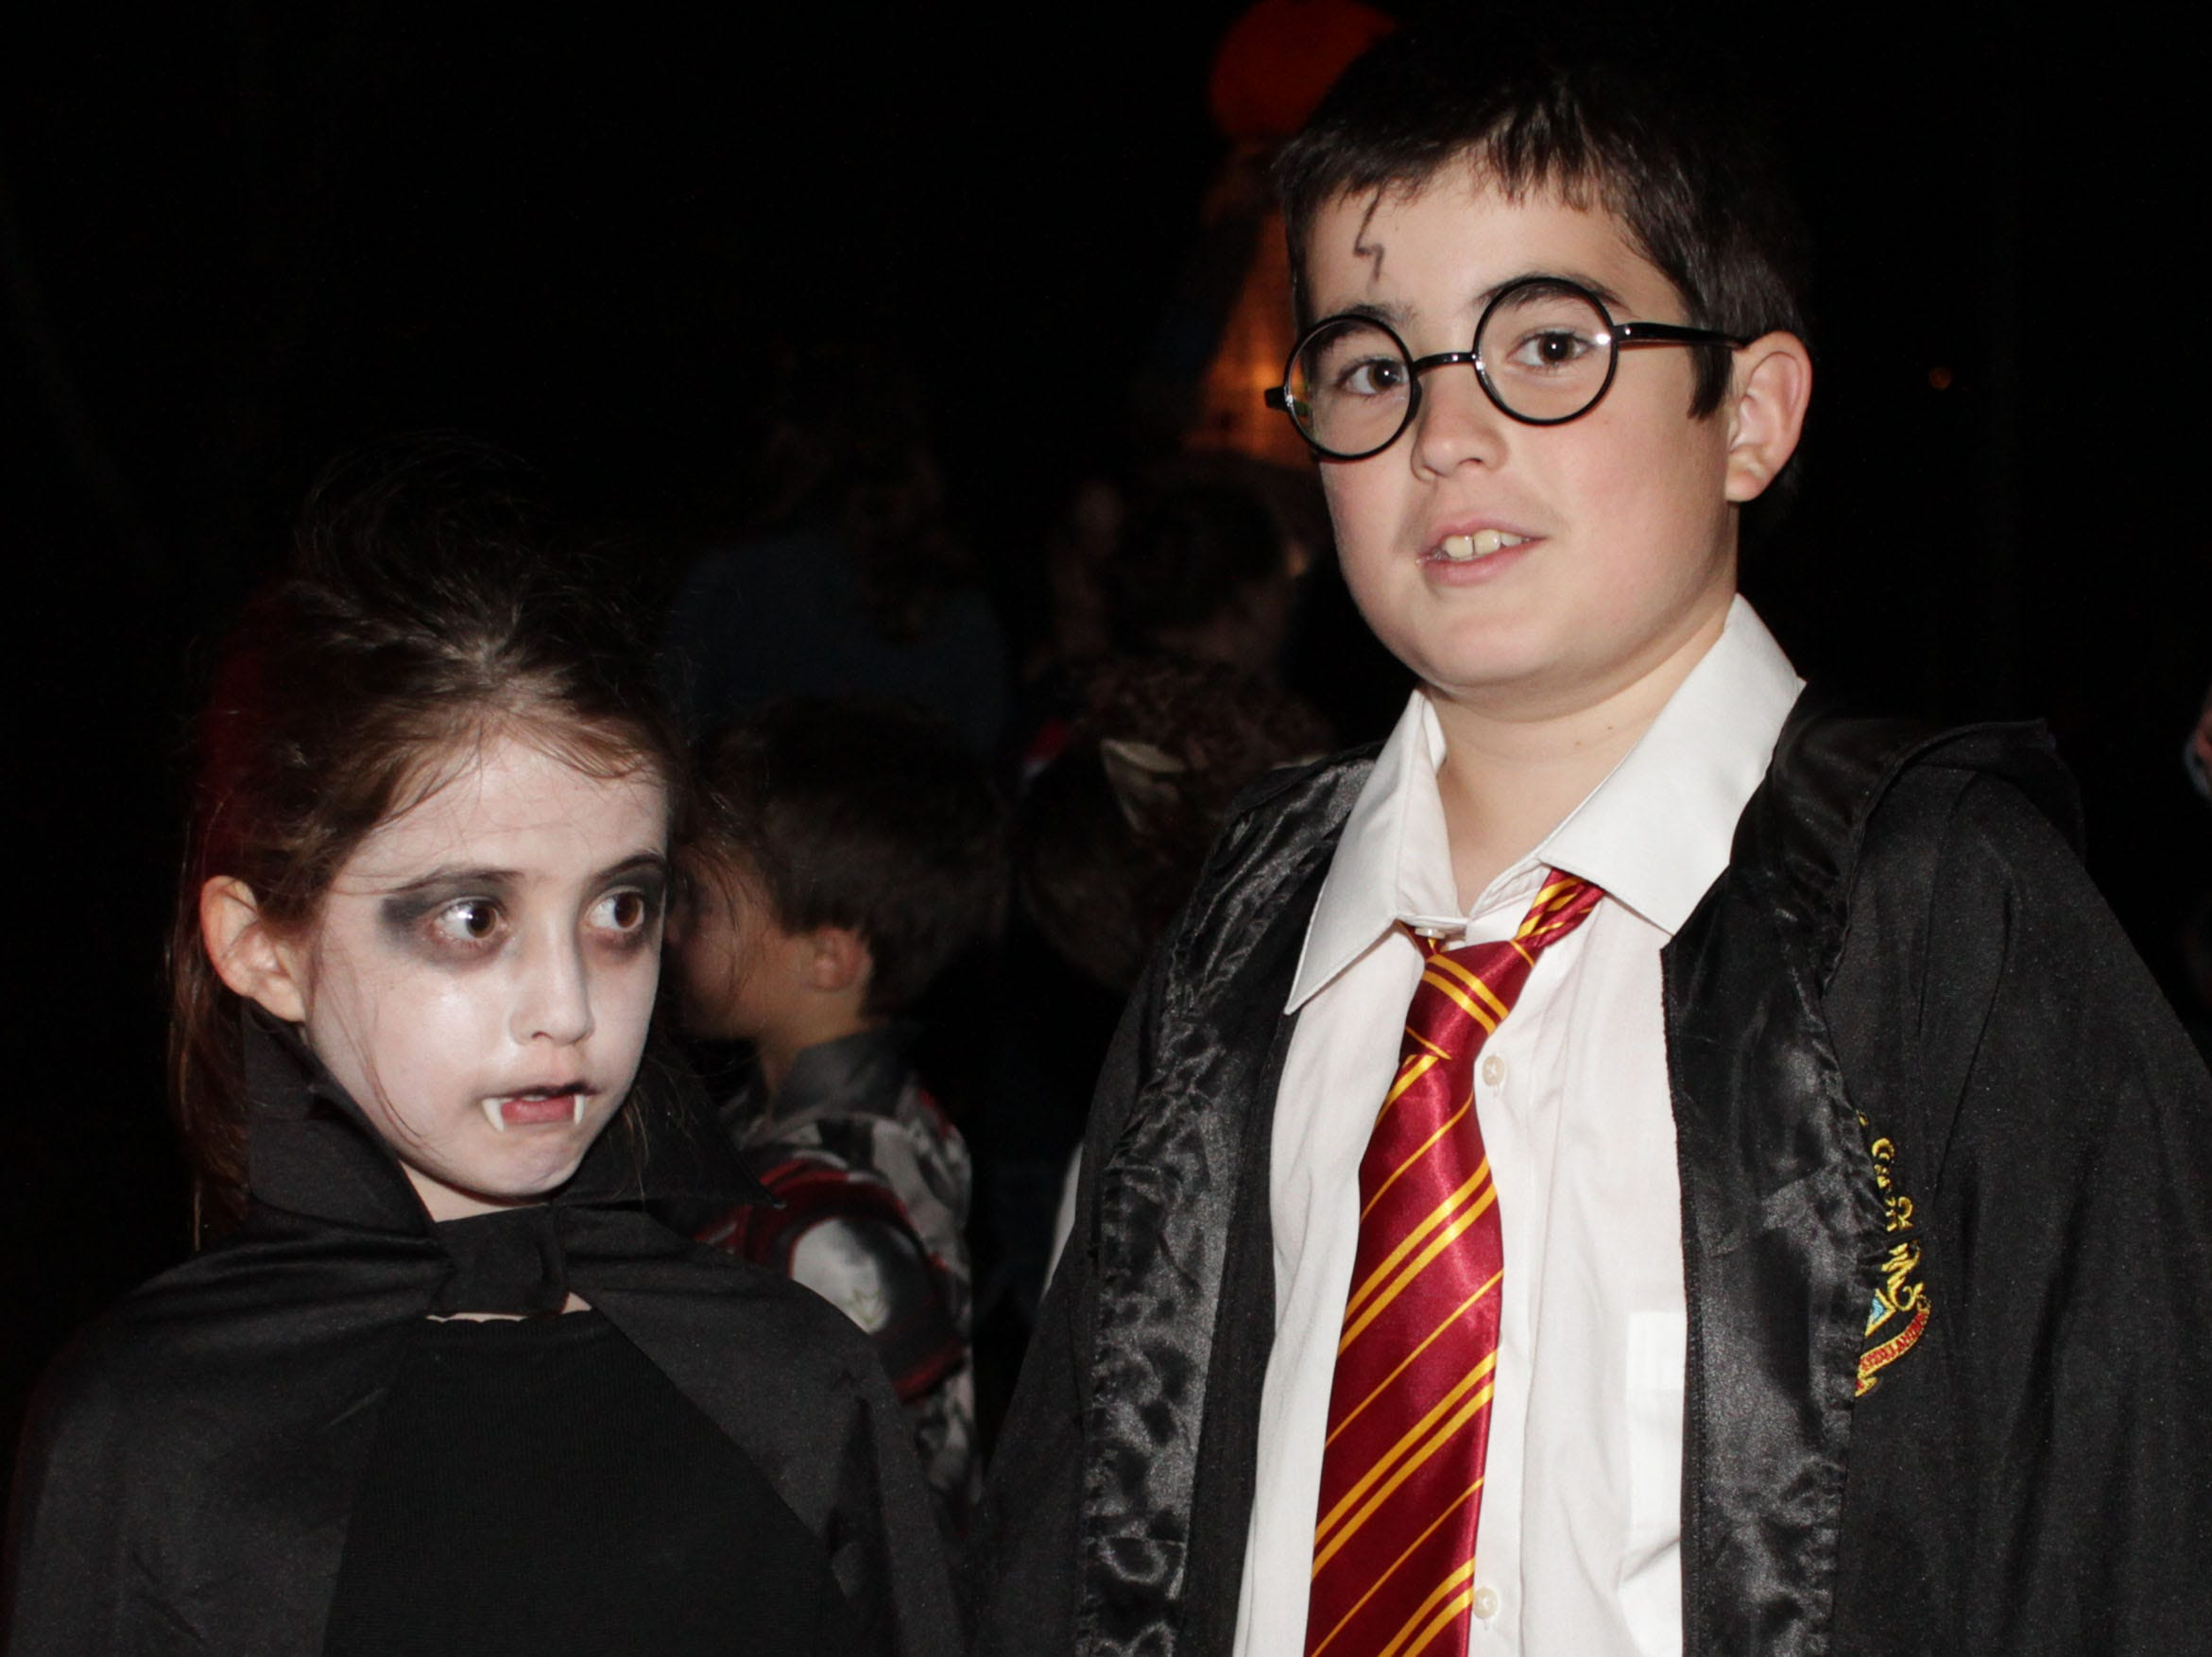 L-R Ryan and Kyle Feole are Mavis and Harry Potter for Halloween at Drakes Creel=k Park in Hendersonville, TN on Tuesday, Ocotober 30, 2018.